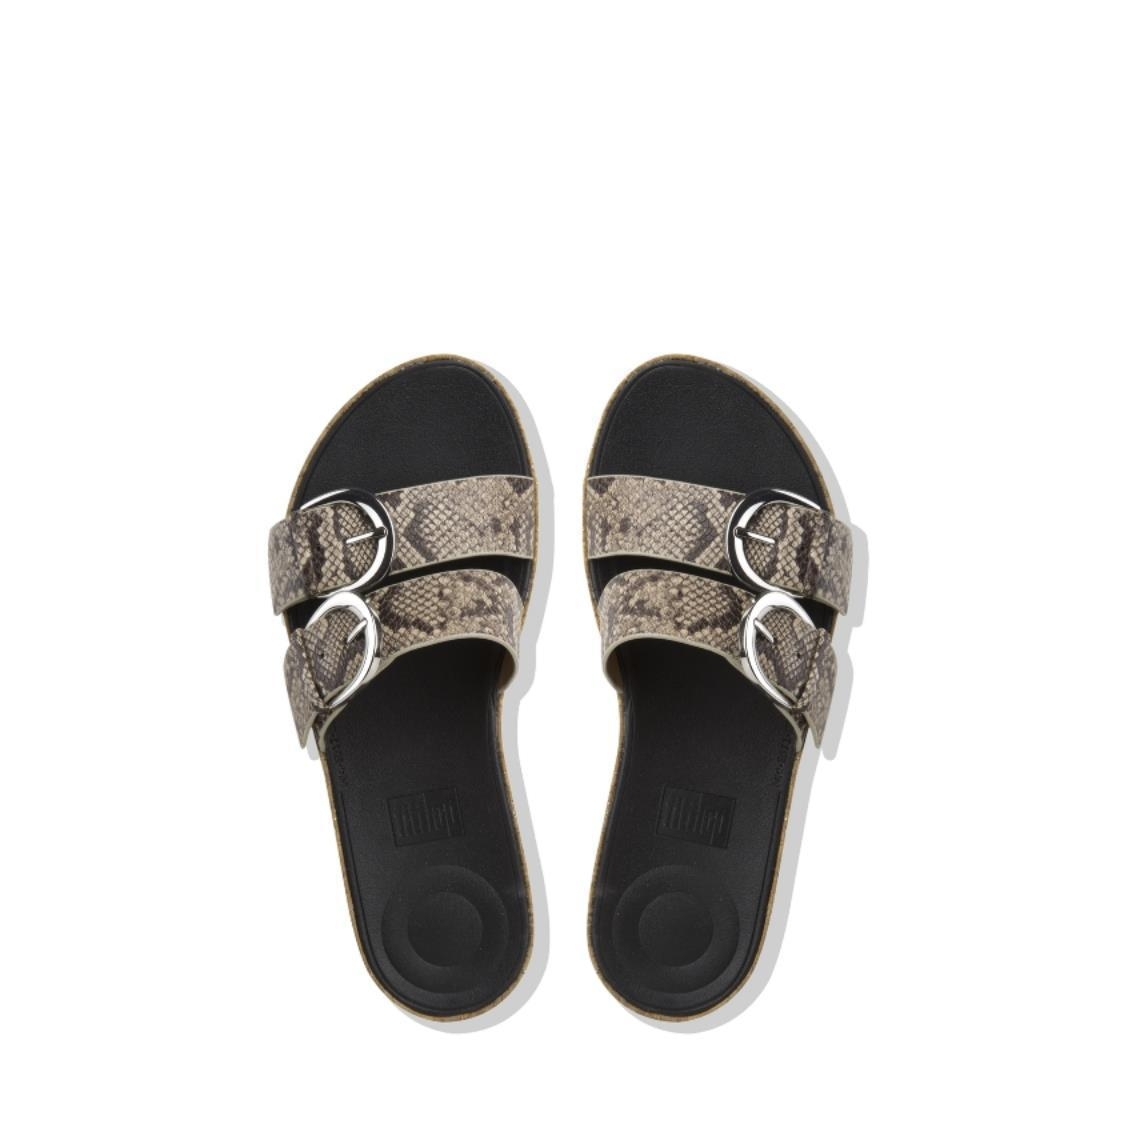 Duo Buckle Snake-Print Leather Slide Sandals Taupe Snake